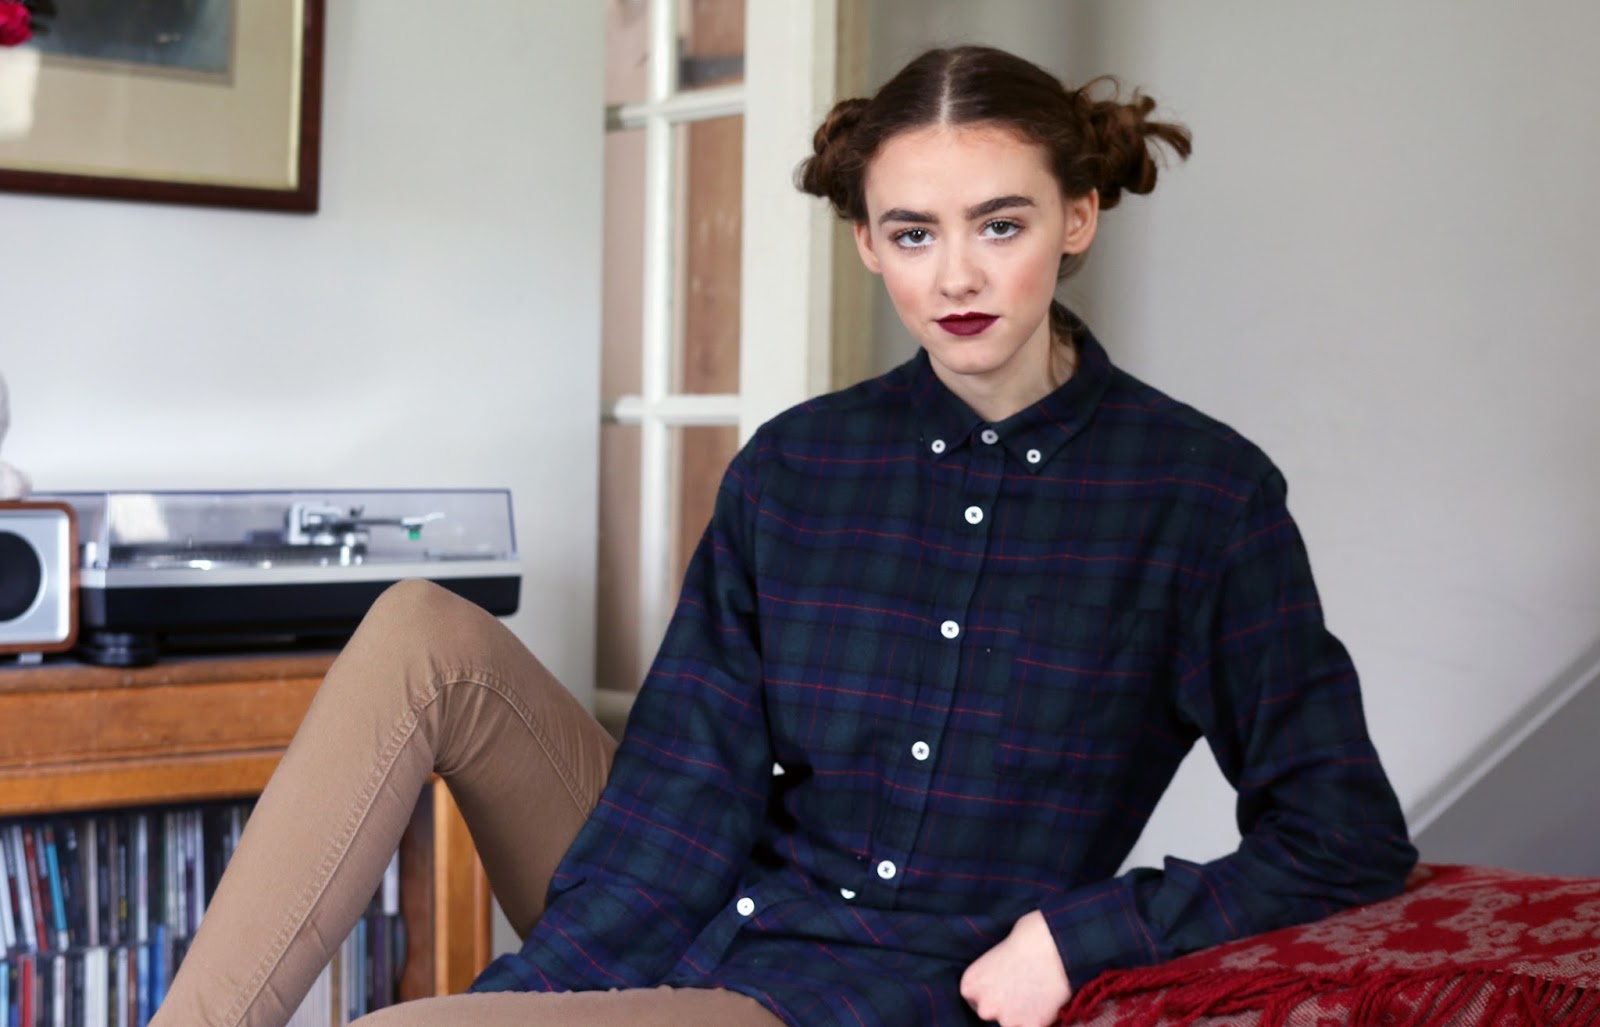 tartan, fashion blogger, british, ootd, grace mandeville, mandeville sisters, tommy hilfiger dungarees, overalls, shorts, tommy, hilfiger, urban outfitters, urban outfitters exclusive, boys, clothes, shirts, buns, mandeville, lol, fashion, eyebrows,